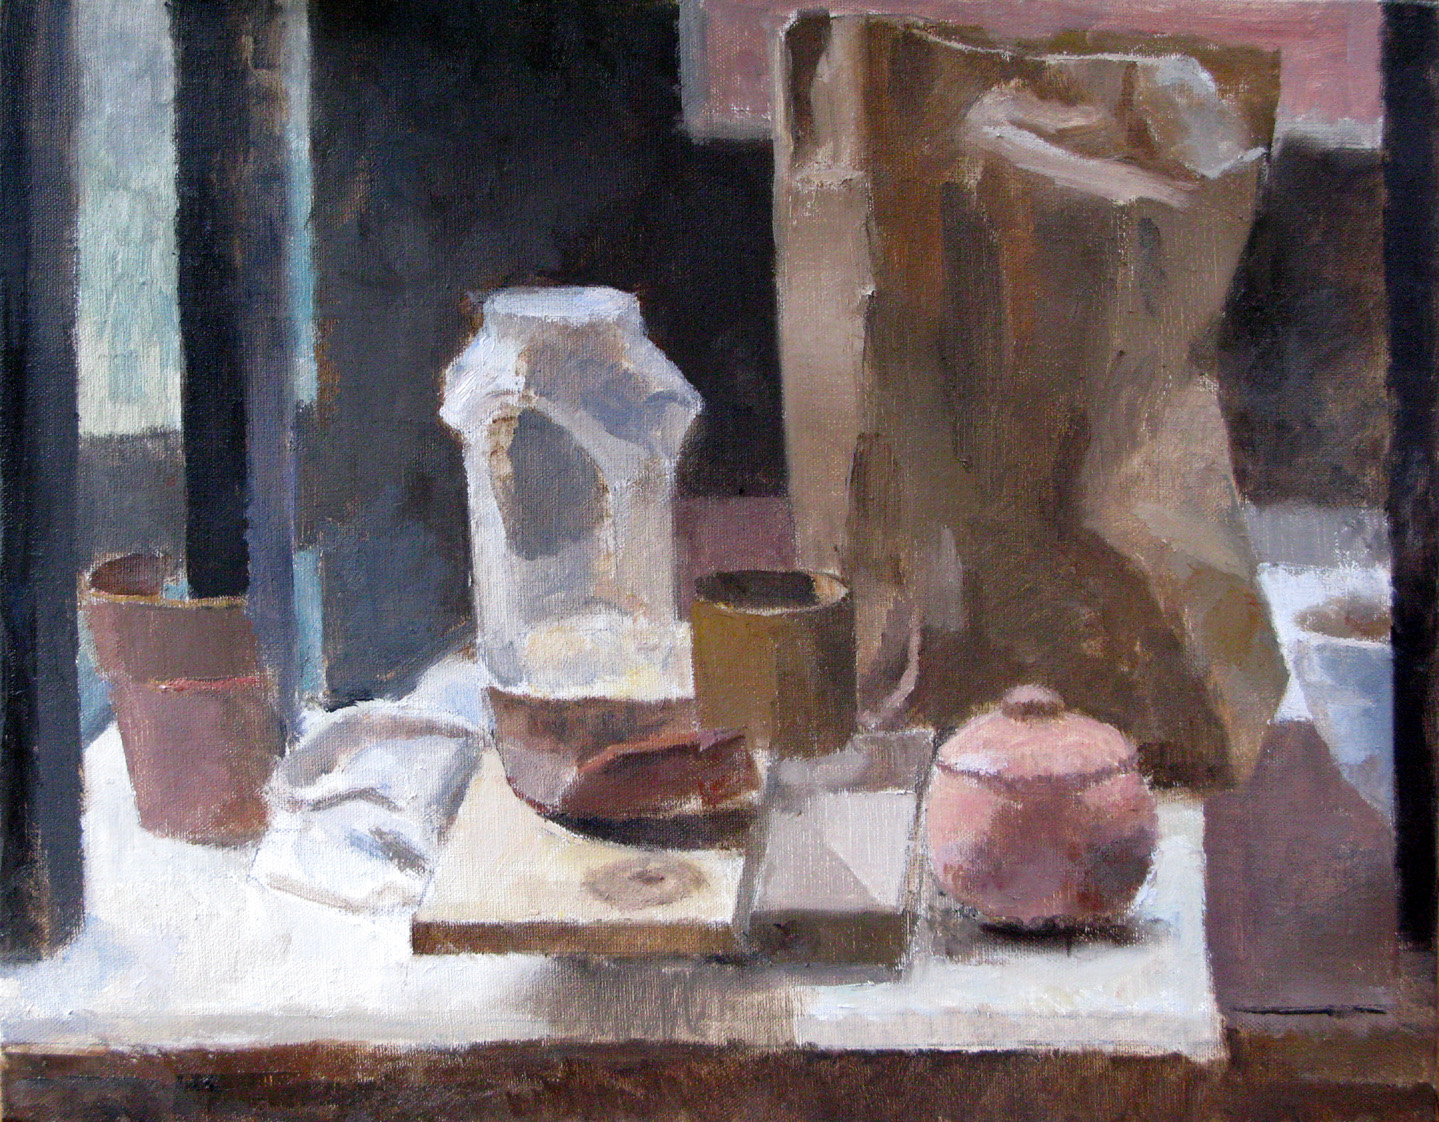 "Plant Pot Fragments and Paper Bag, 16"" x 20"", oil on linen"